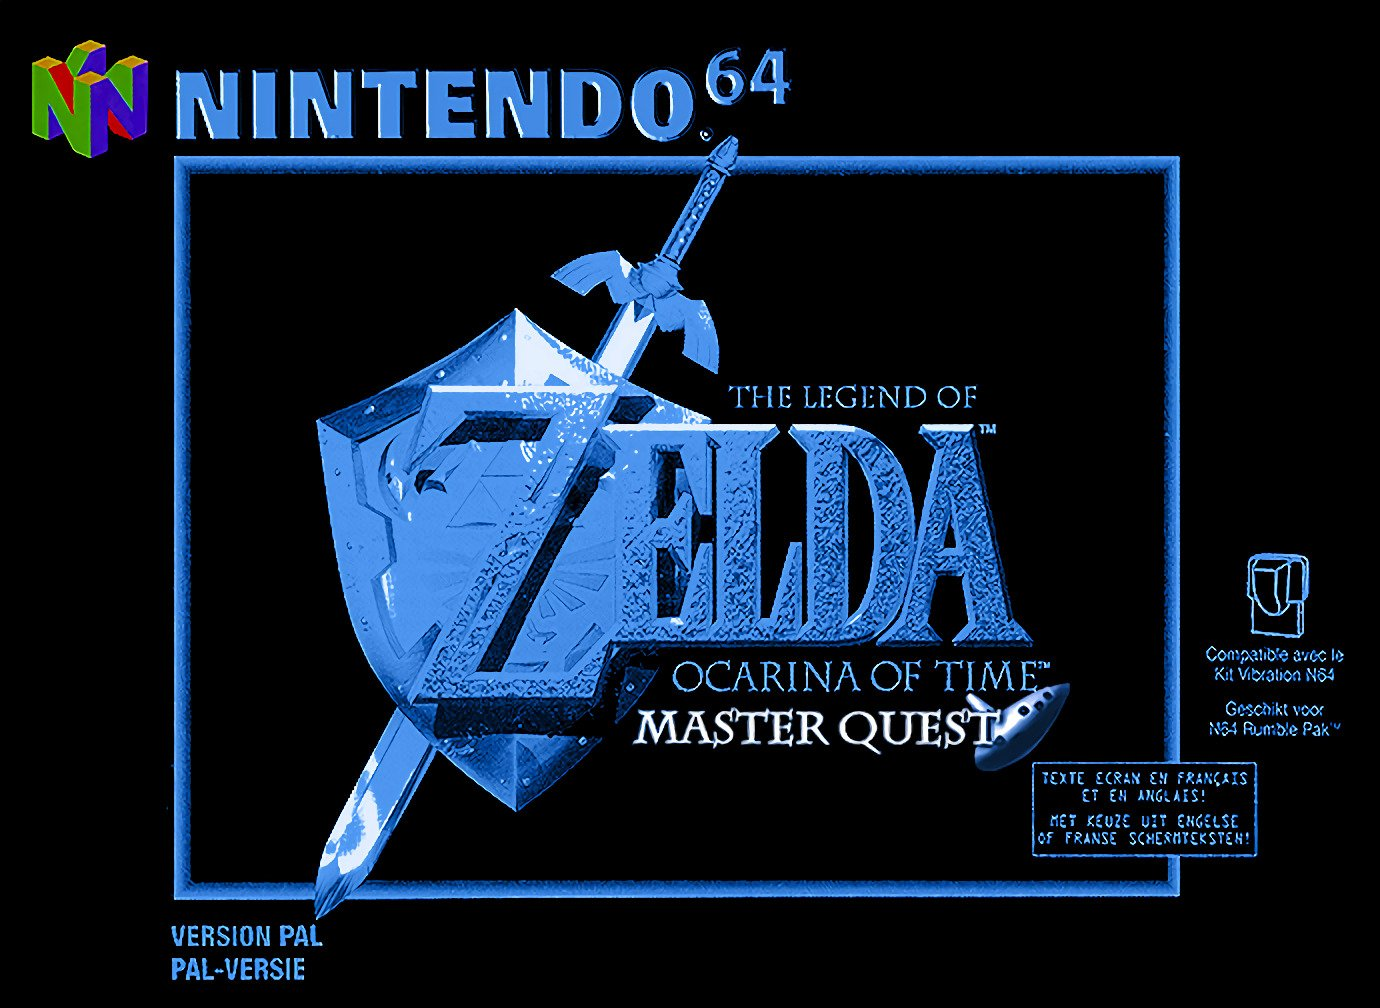 The Legend of Zelda : Ocarina of Time Master Quest